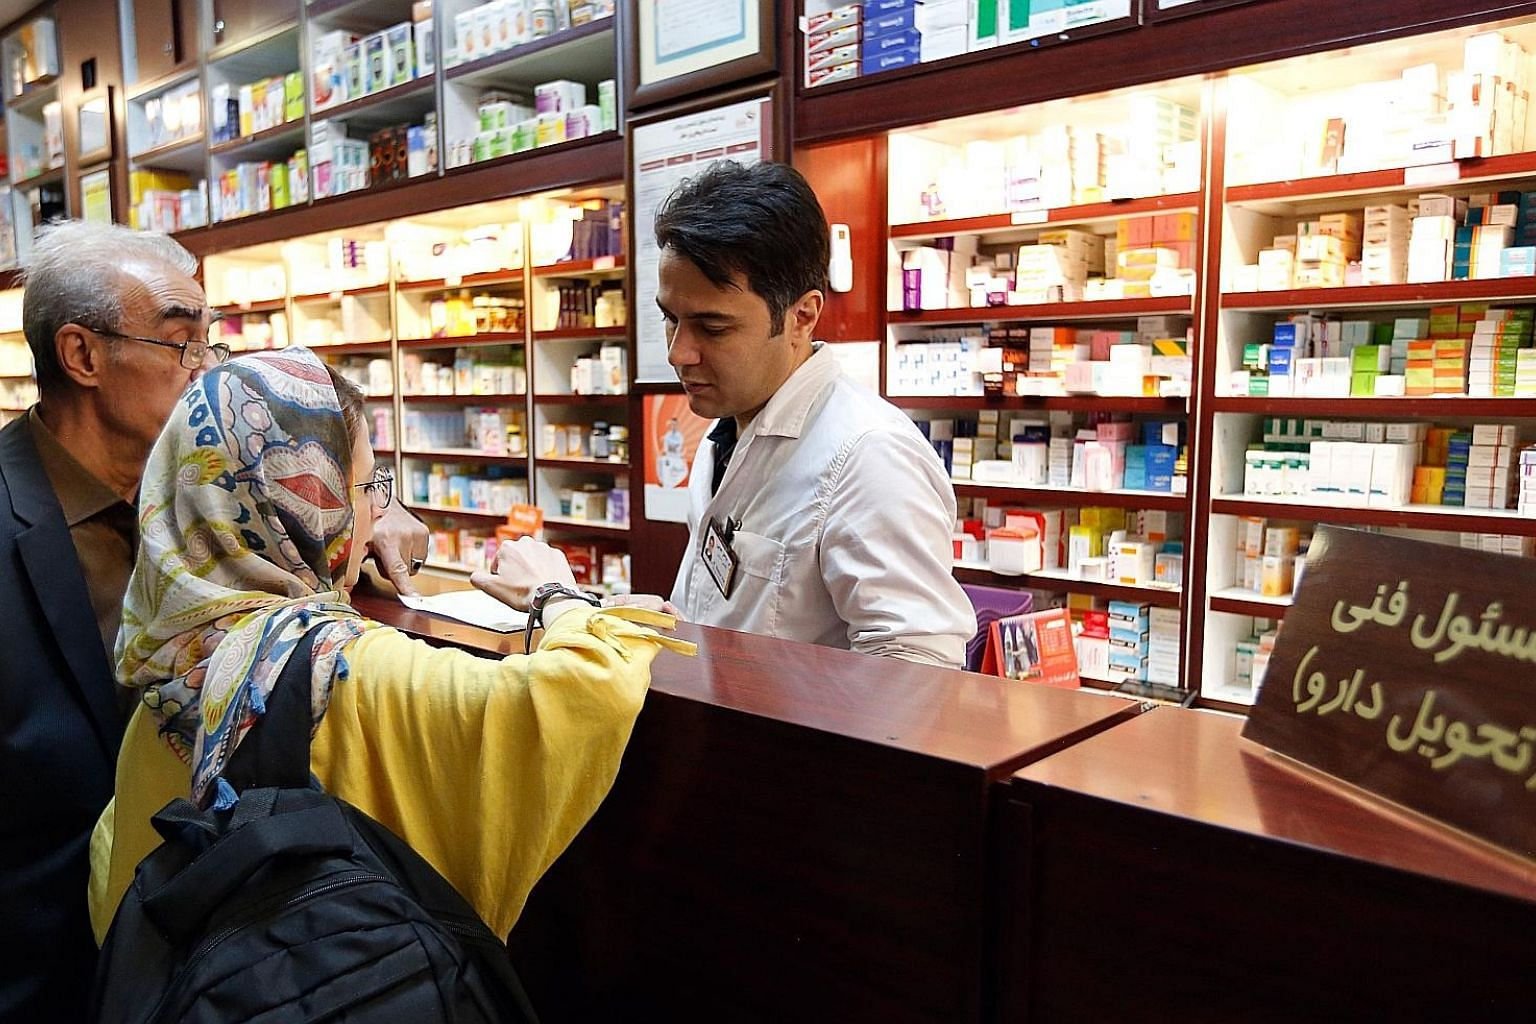 Items such as medicines and medical devices should be allowed freely into Iran, according to the International Court Of Justice ruling on US sanctions against Teheran.